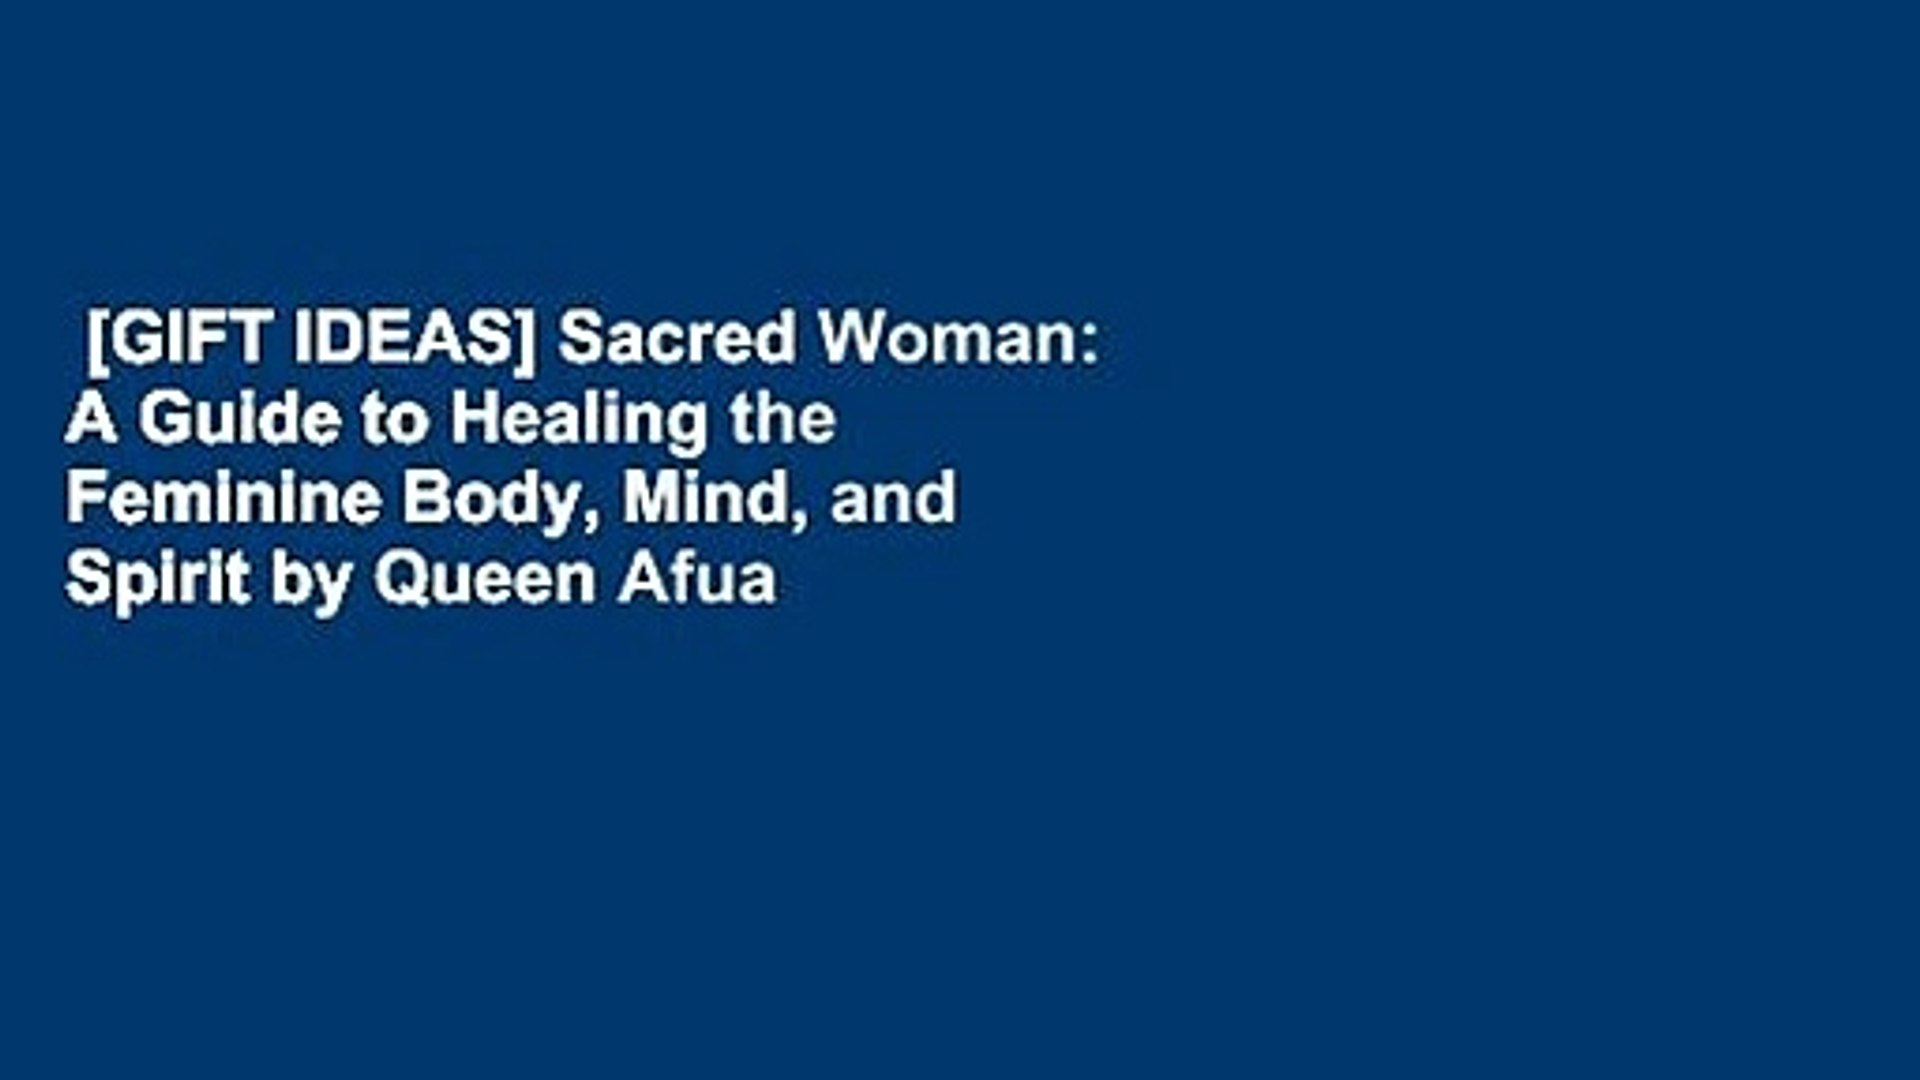 [GIFT IDEAS] Sacred Woman: A Guide to Healing the Feminine Body, Mind, and  Spirit by Queen Afua